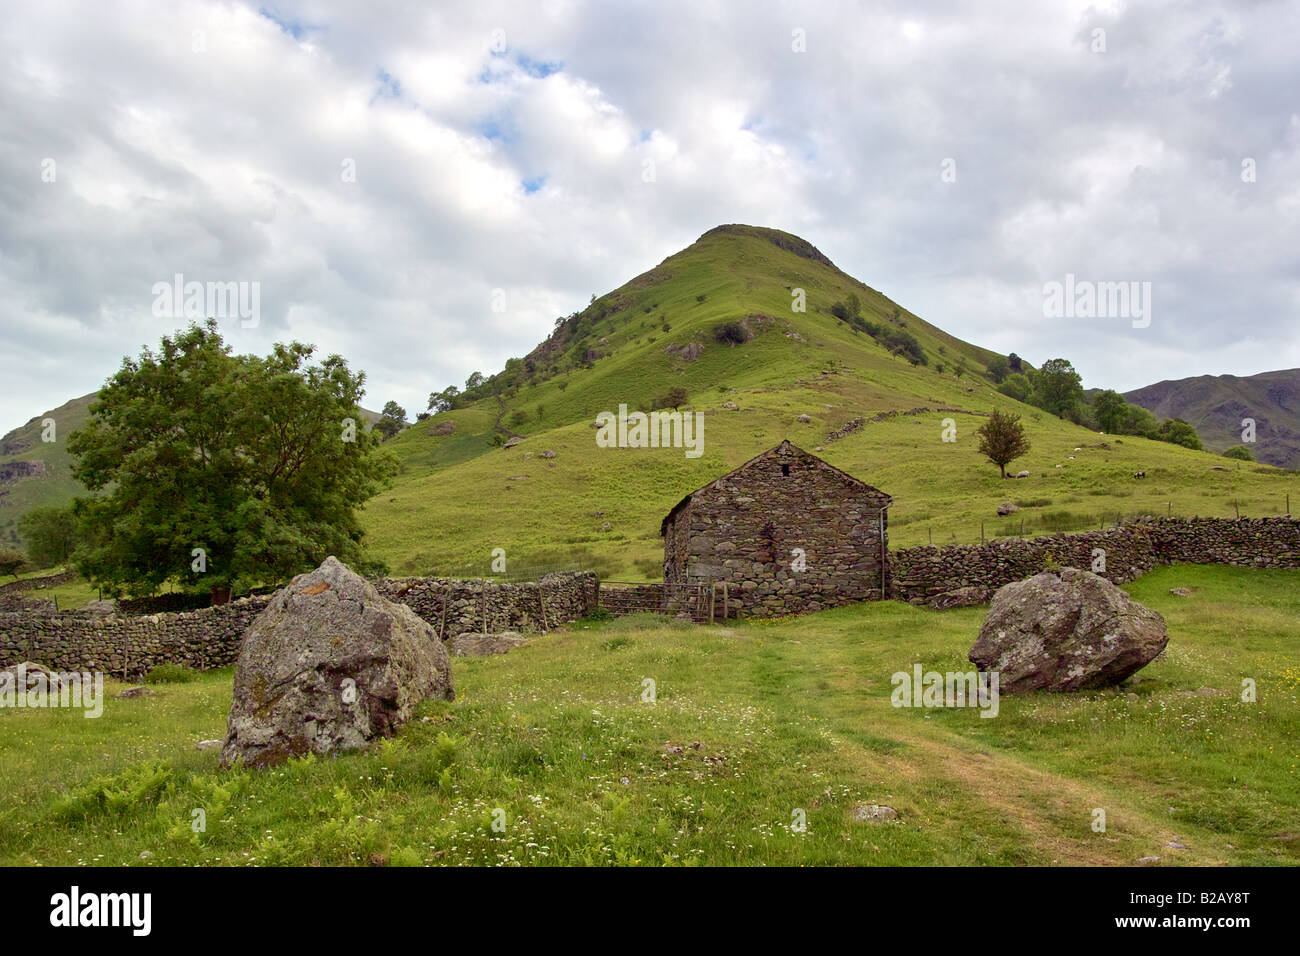 High Hartsop Dodd in the Lake District, Cumbria, England. - Stock Image